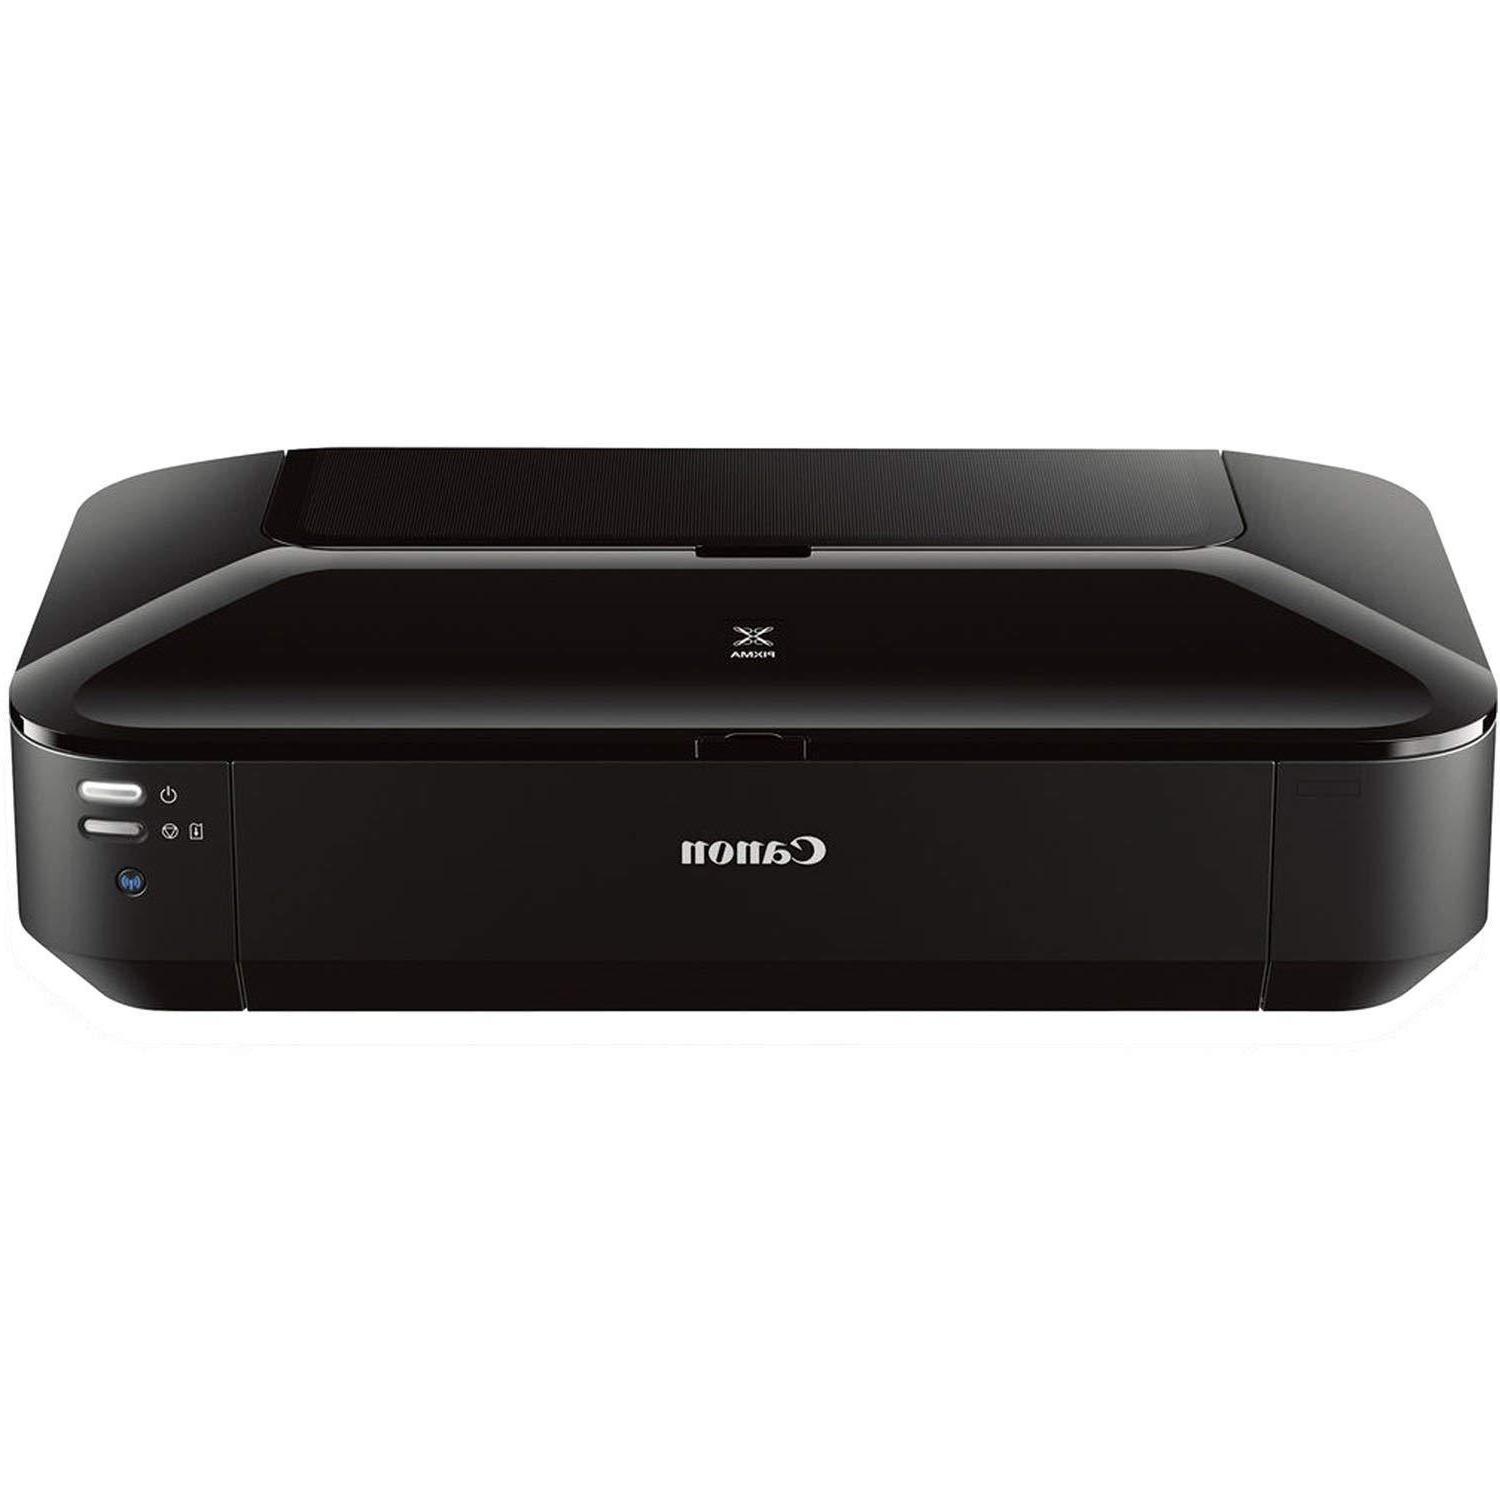 pixma ix6820 wireless business printer with airprint